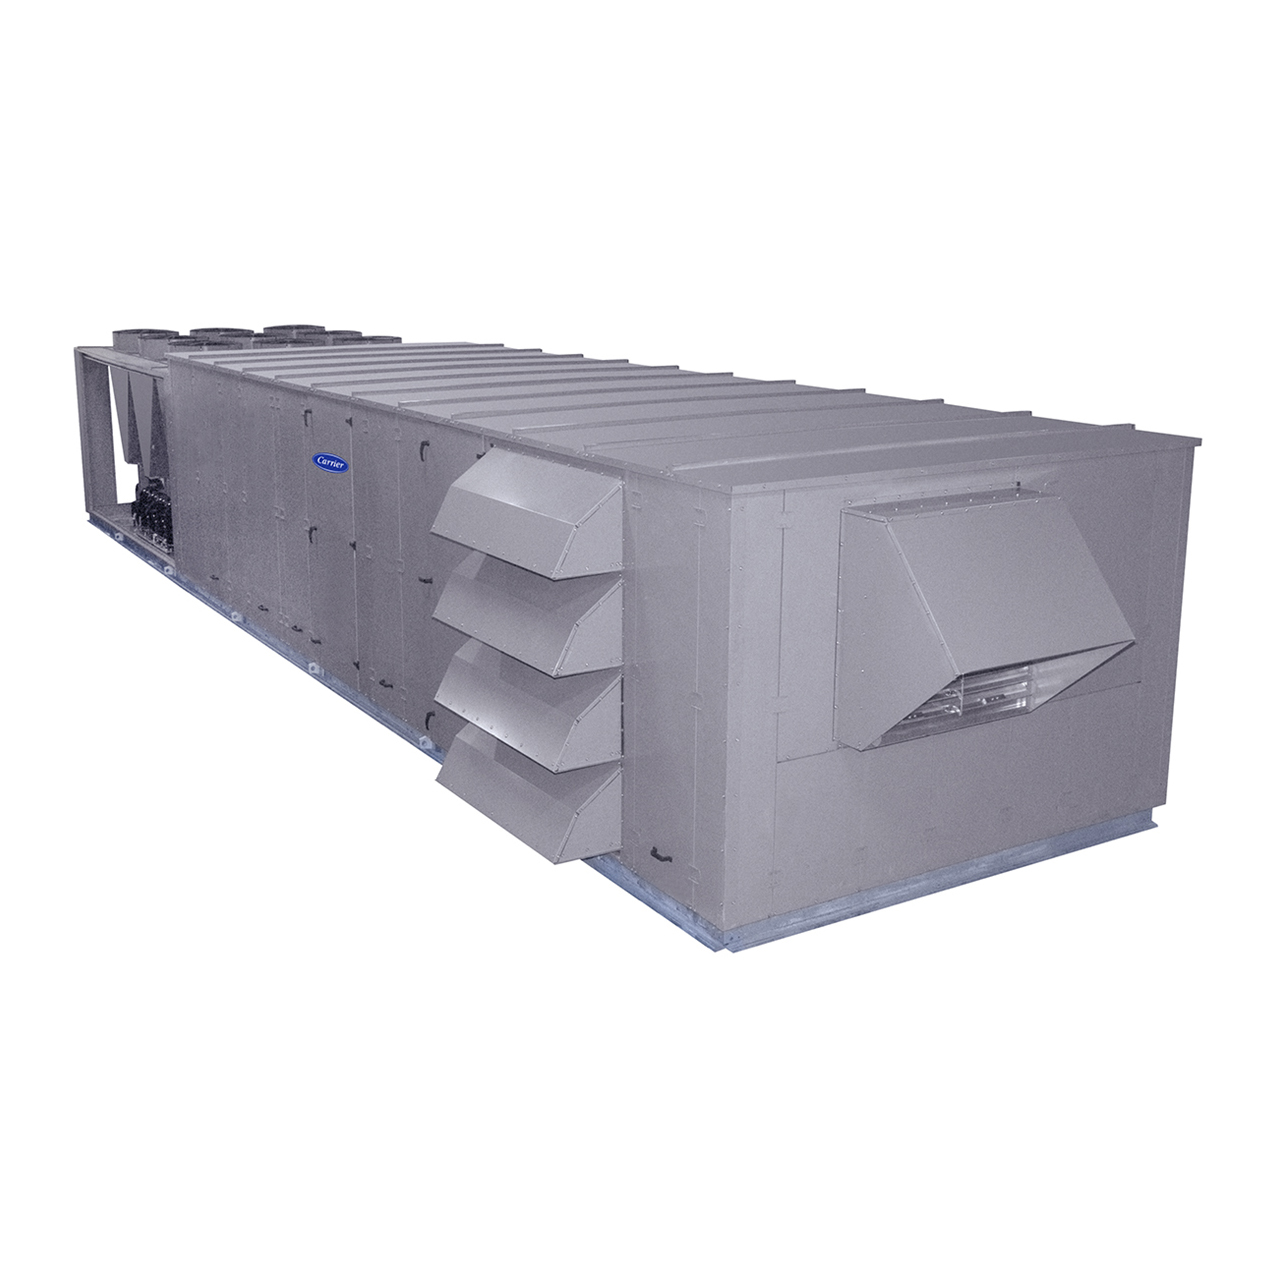 Carrier N Series rooftop units are pre-wired and factory-tested in both cooling and heating modes. All 48N models feature a double wall foam panel cabinet design with hinged man-sized access panels.